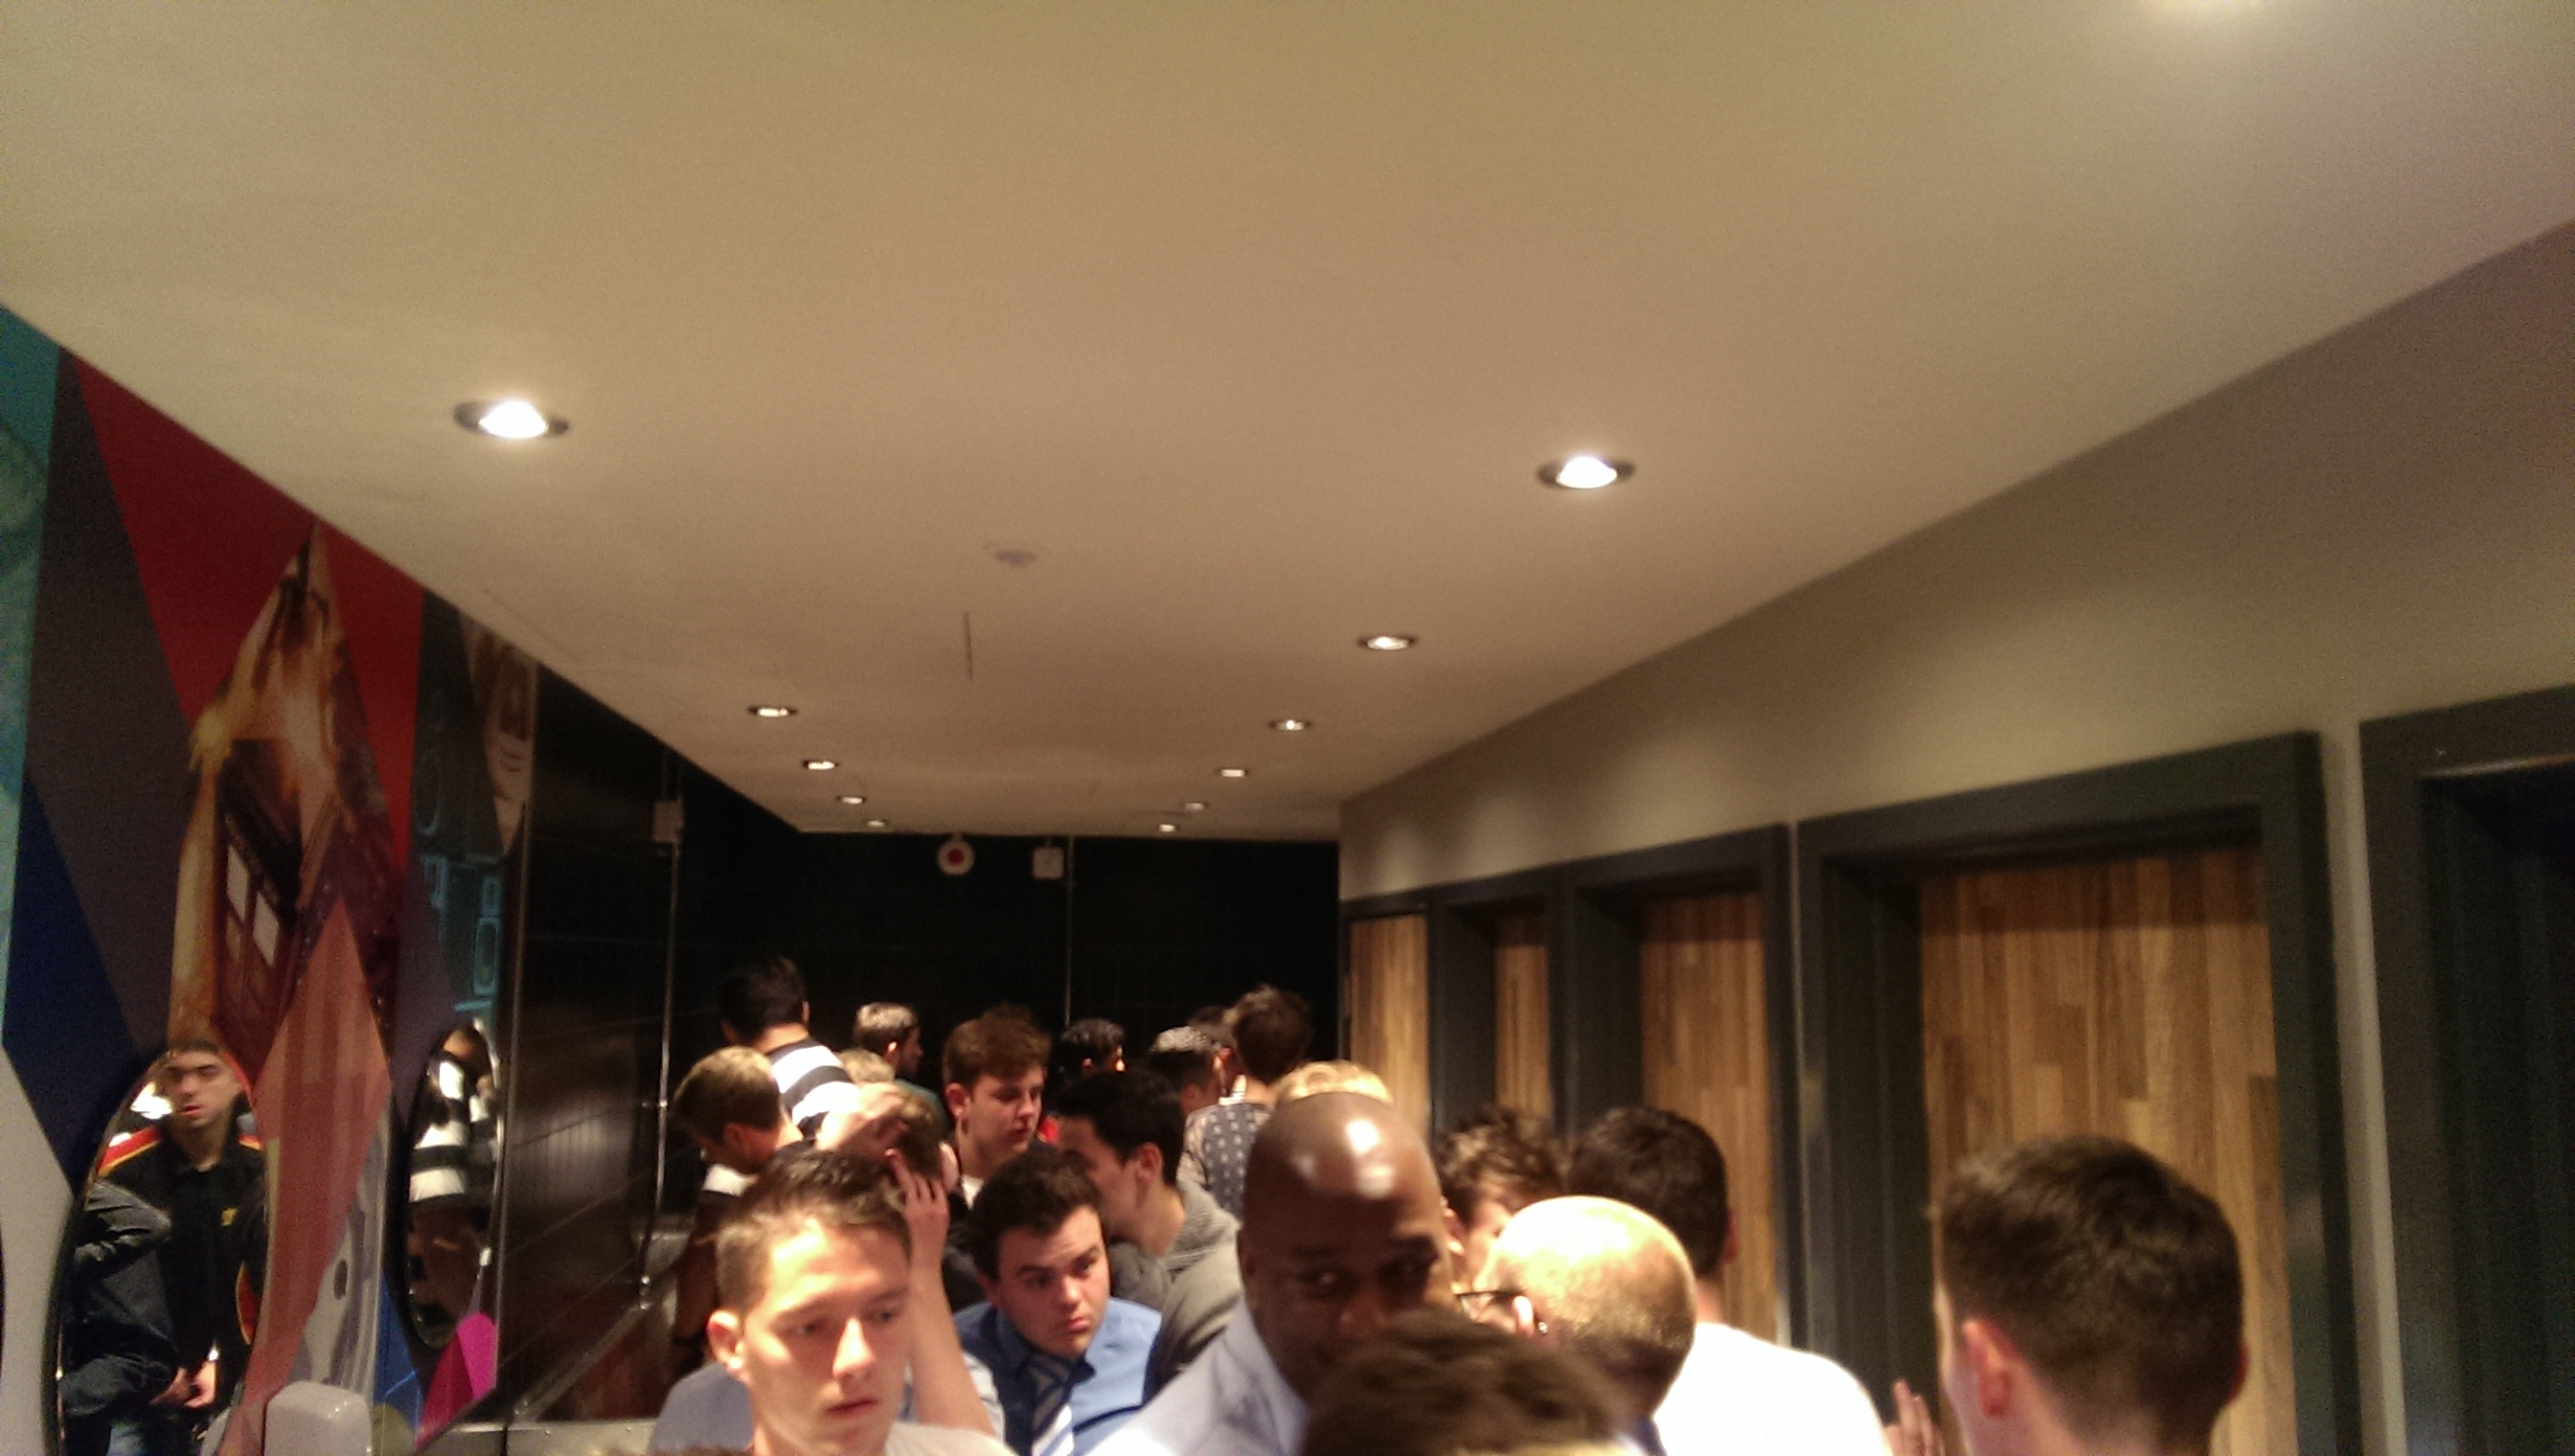 You're right. These are all of boys toilets. It would be weird if I, a man, would have gone into the other girls, no?